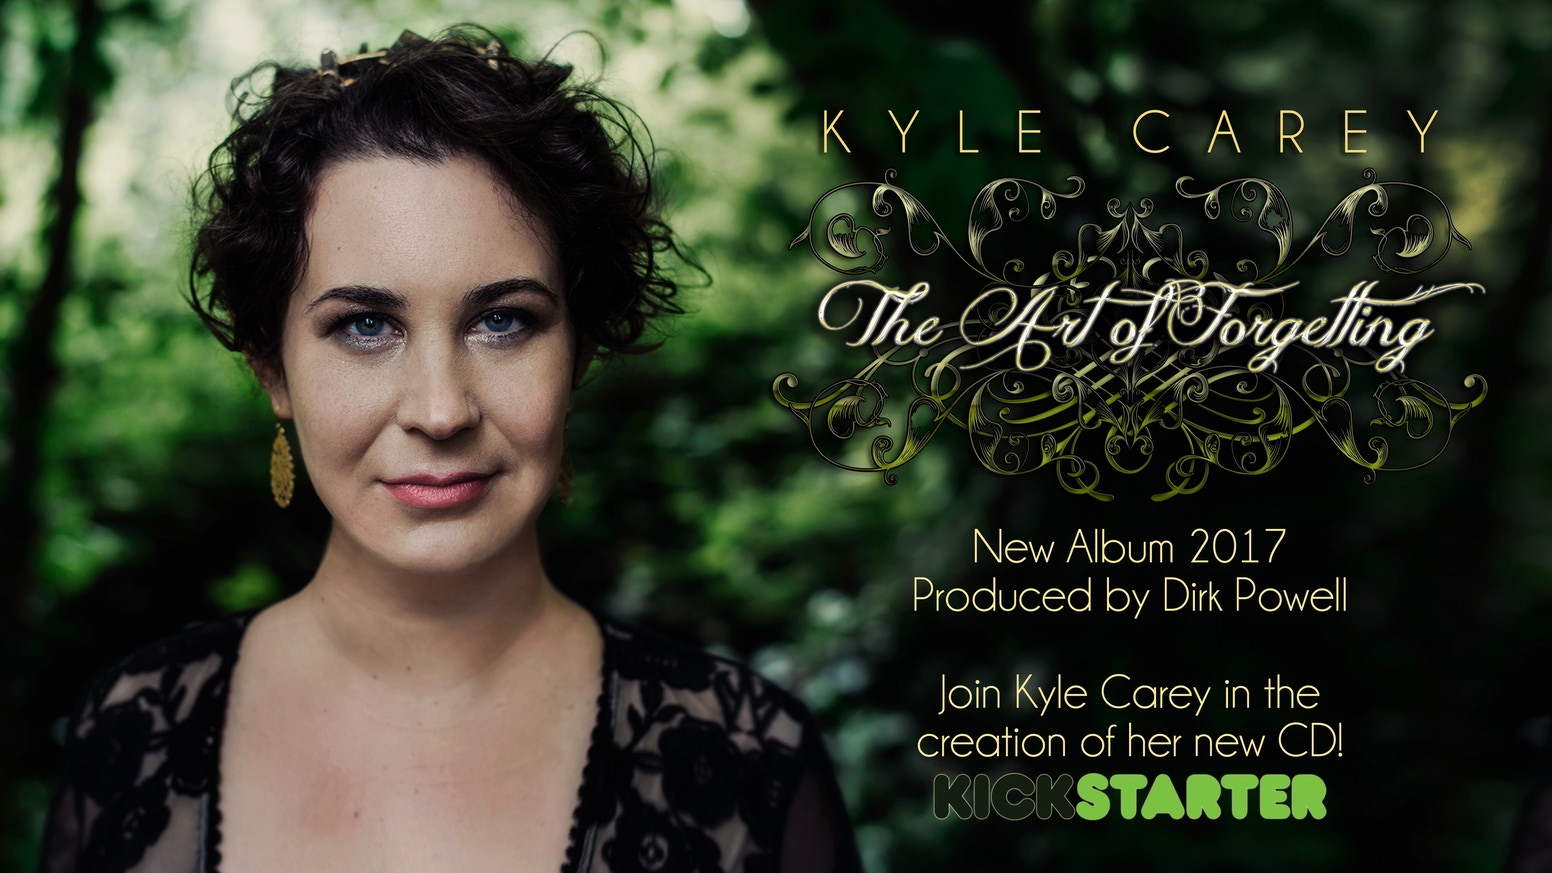 'Gaelic Americana' singer-songwriter Kyle Carey is making a new album! Will you join her on the journey?